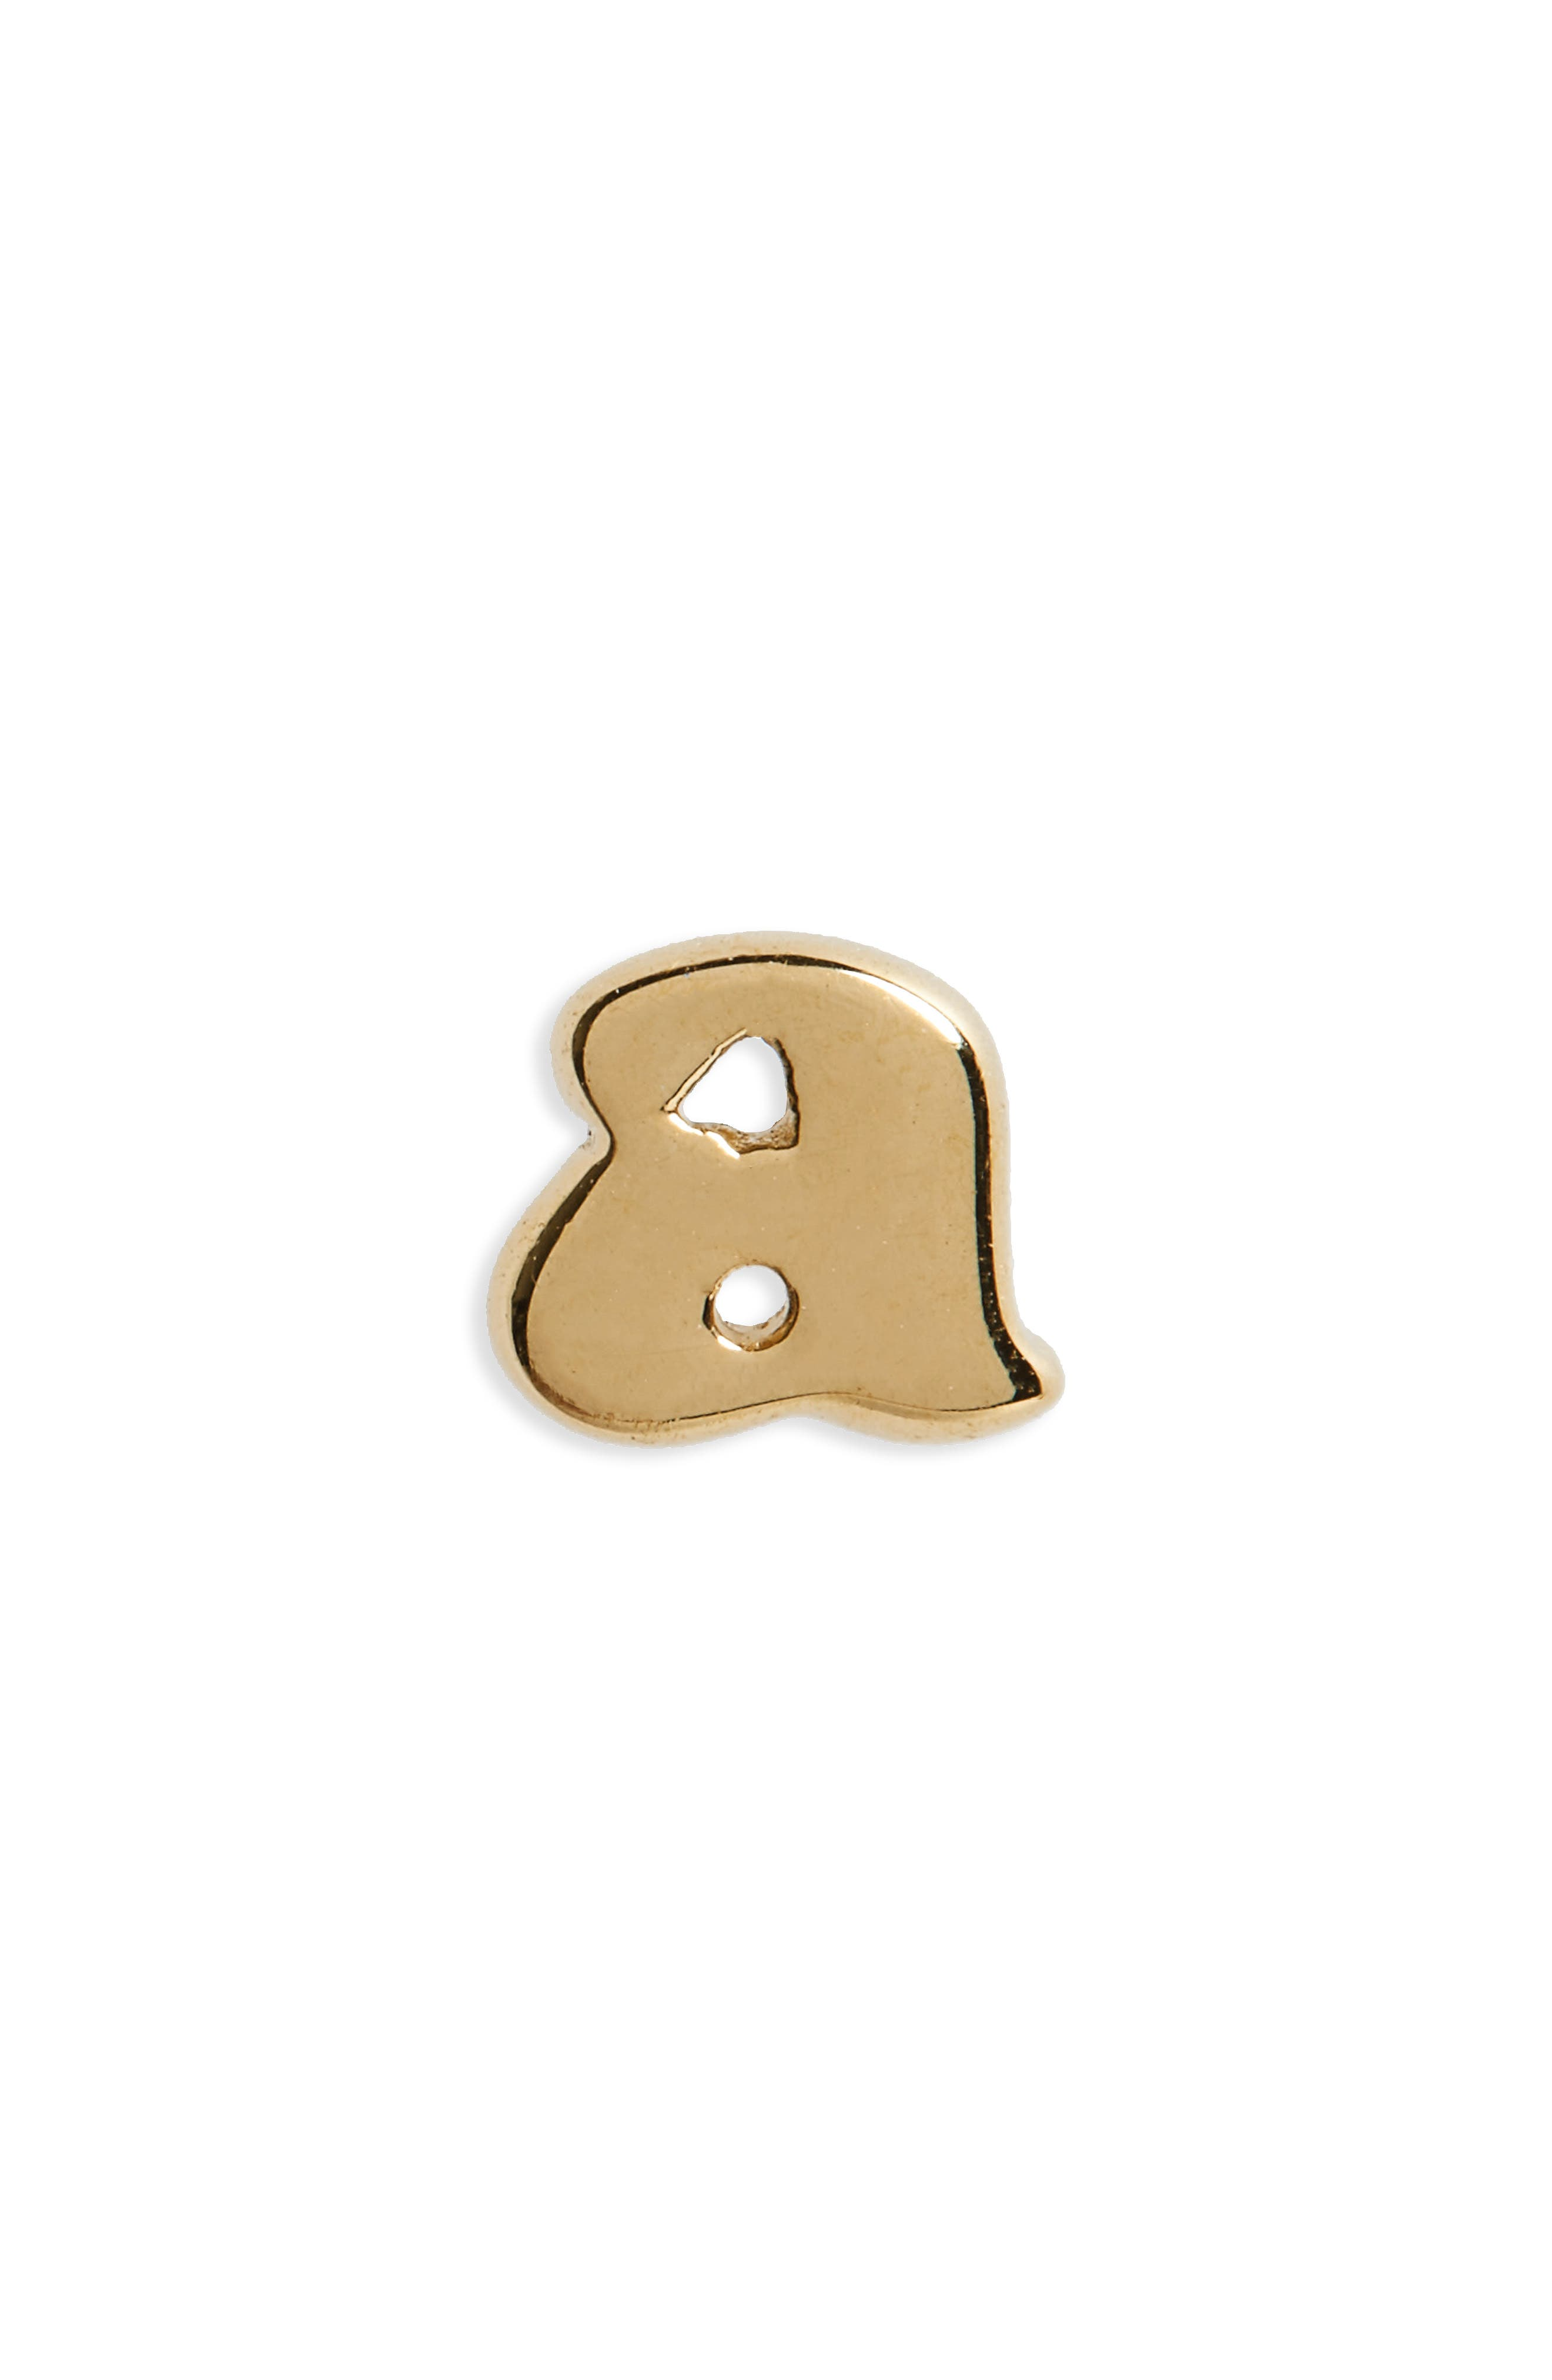 Initial Stud Earring,                         Main,                         color, A-GOLD